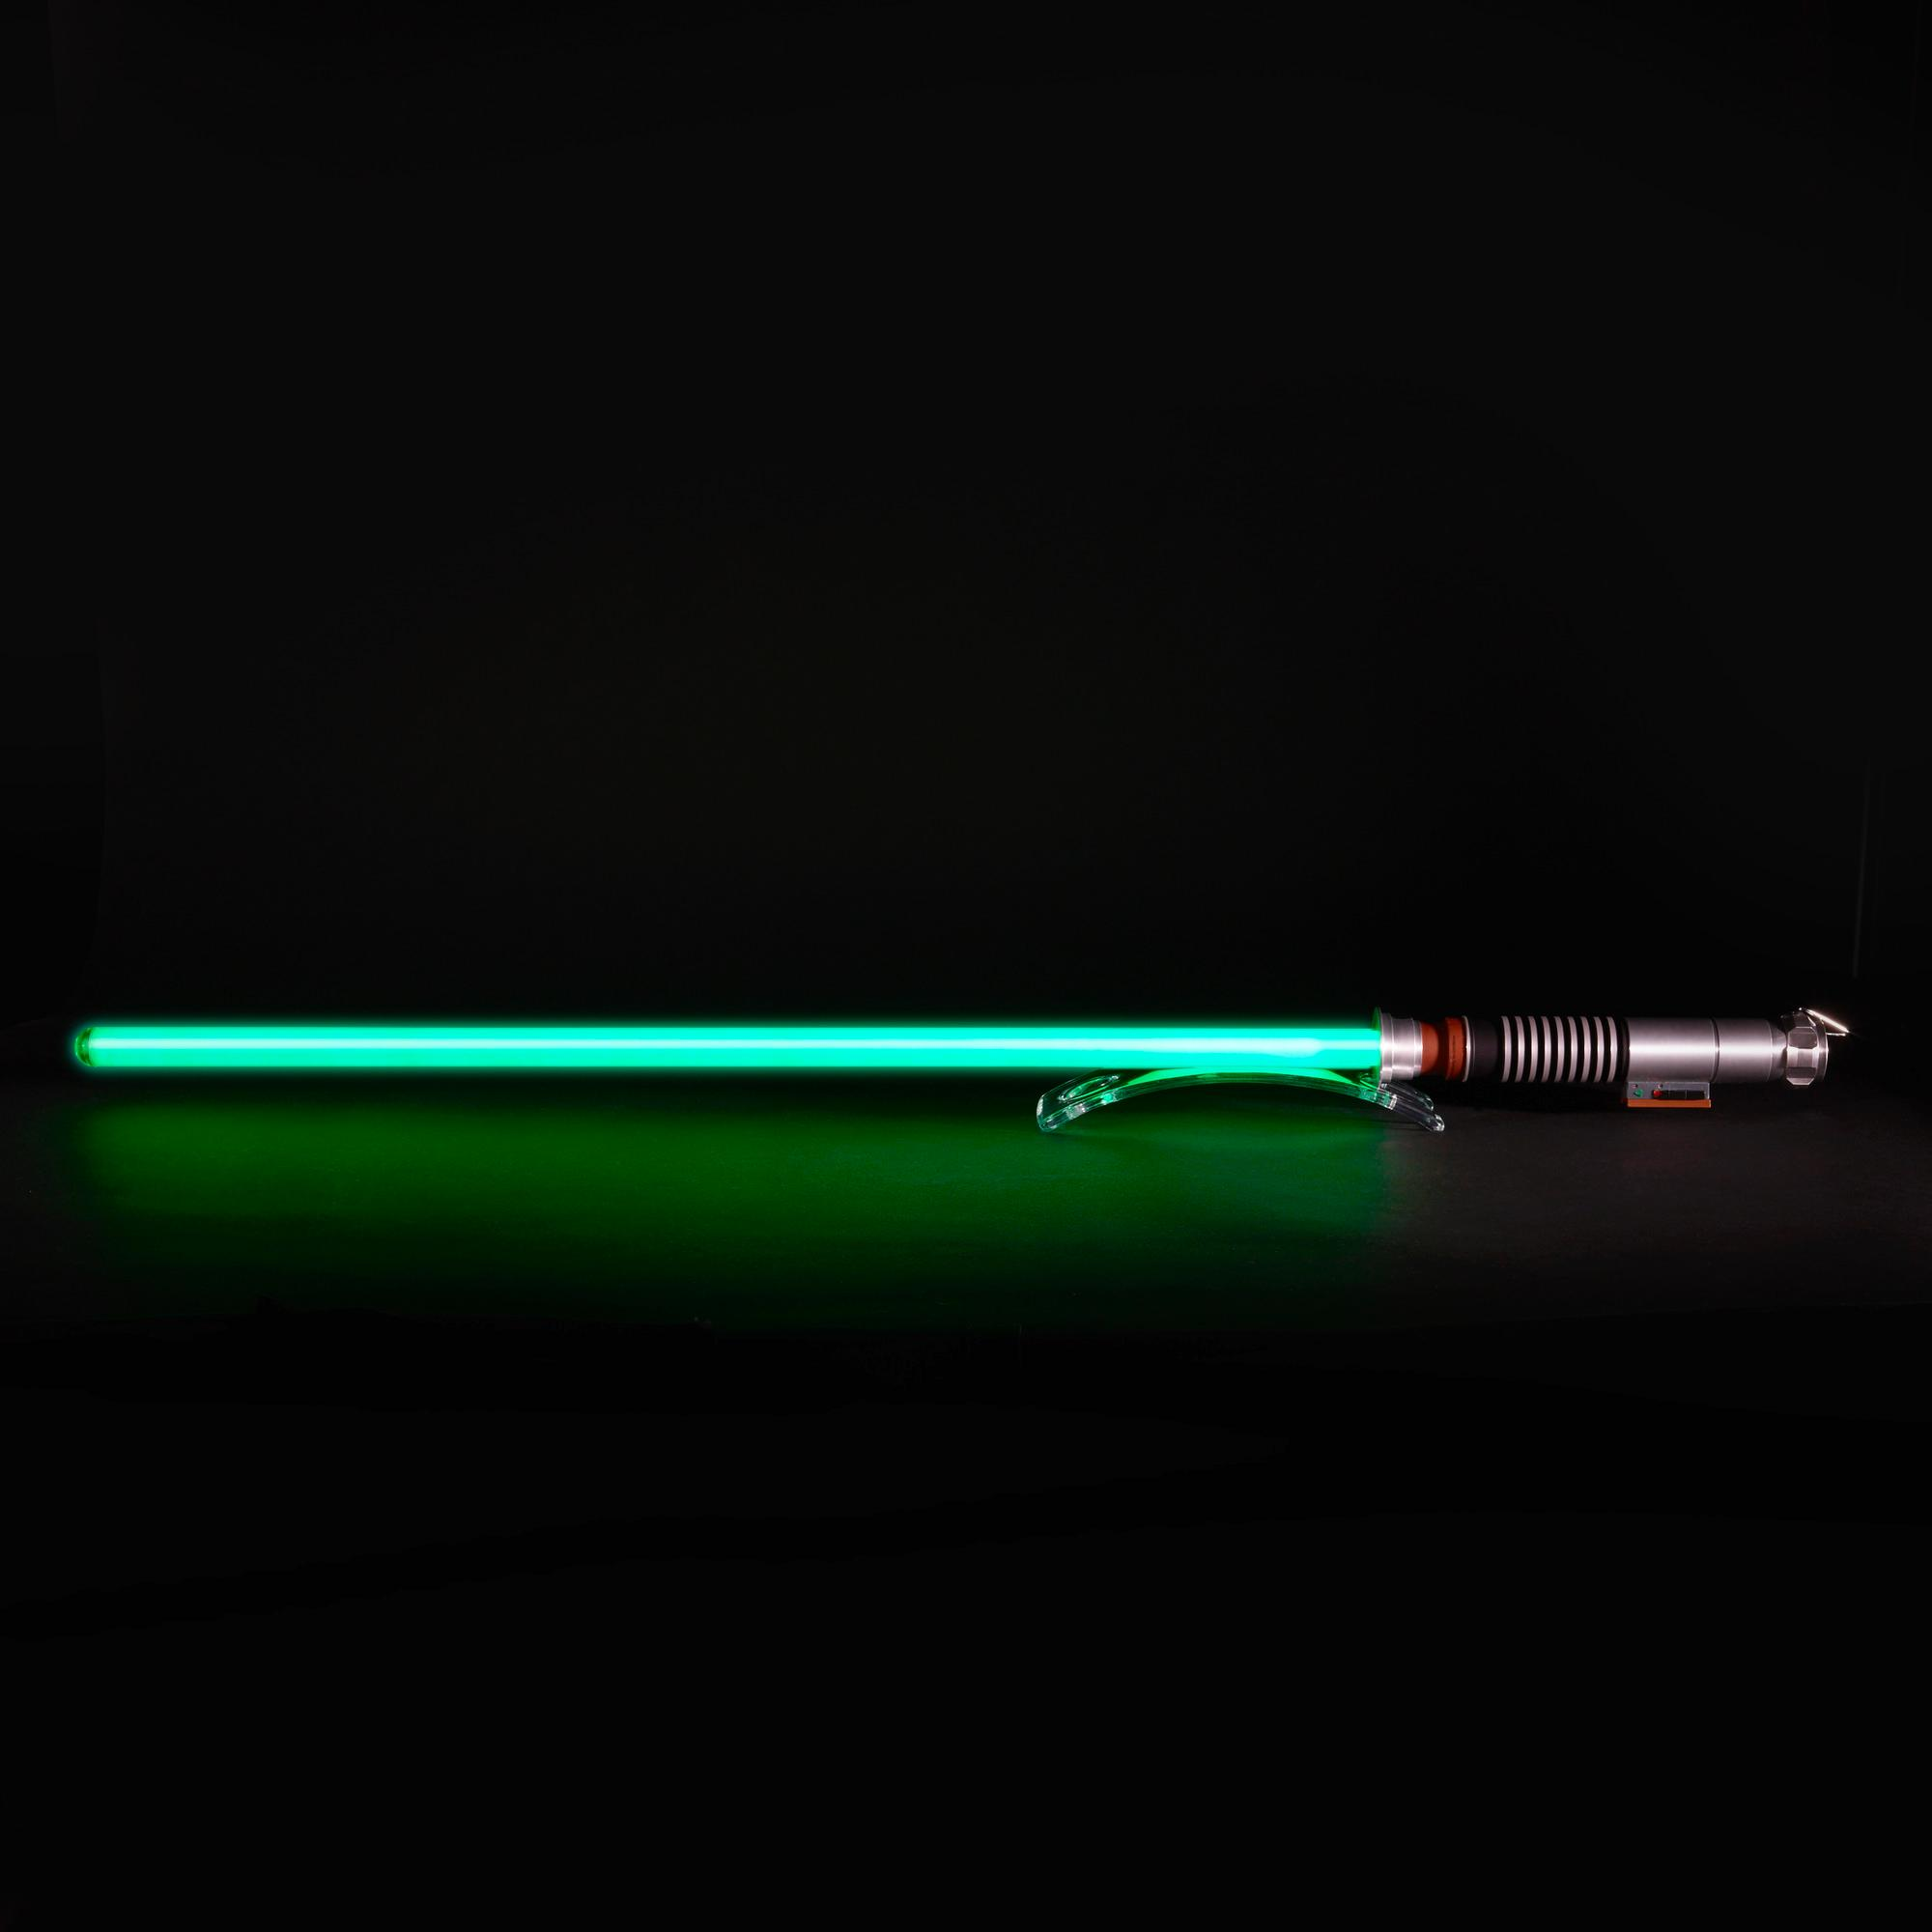 Star Wars Black Series - Sabre de luz Força FX do Luke Skywalker